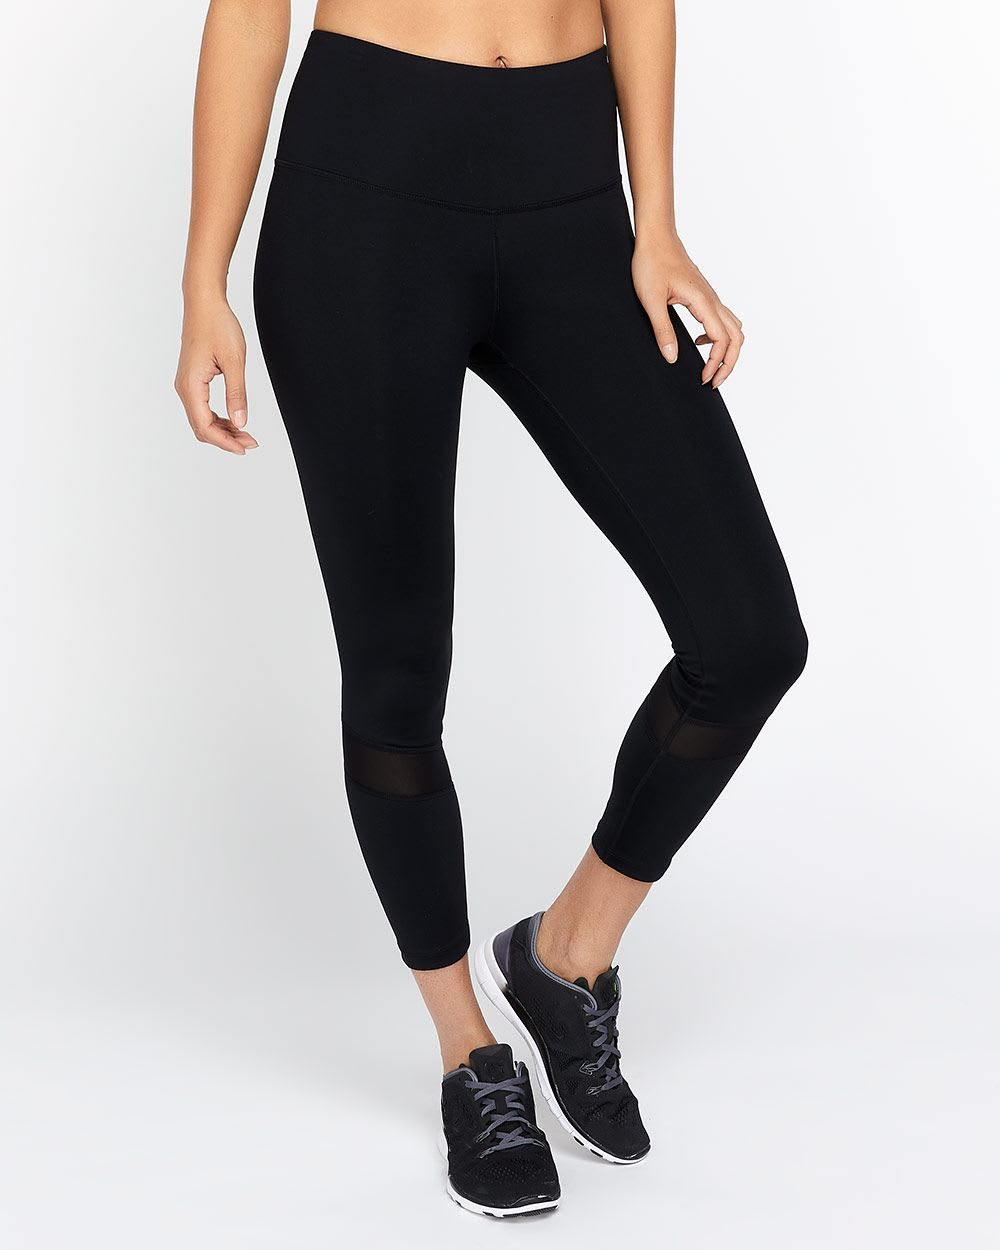 7e85823766 Shop online for Hyba Cropped Compression Legging. Find Leggings & Pants,  Bottoms, HYBA Activewear and more at Reitmans